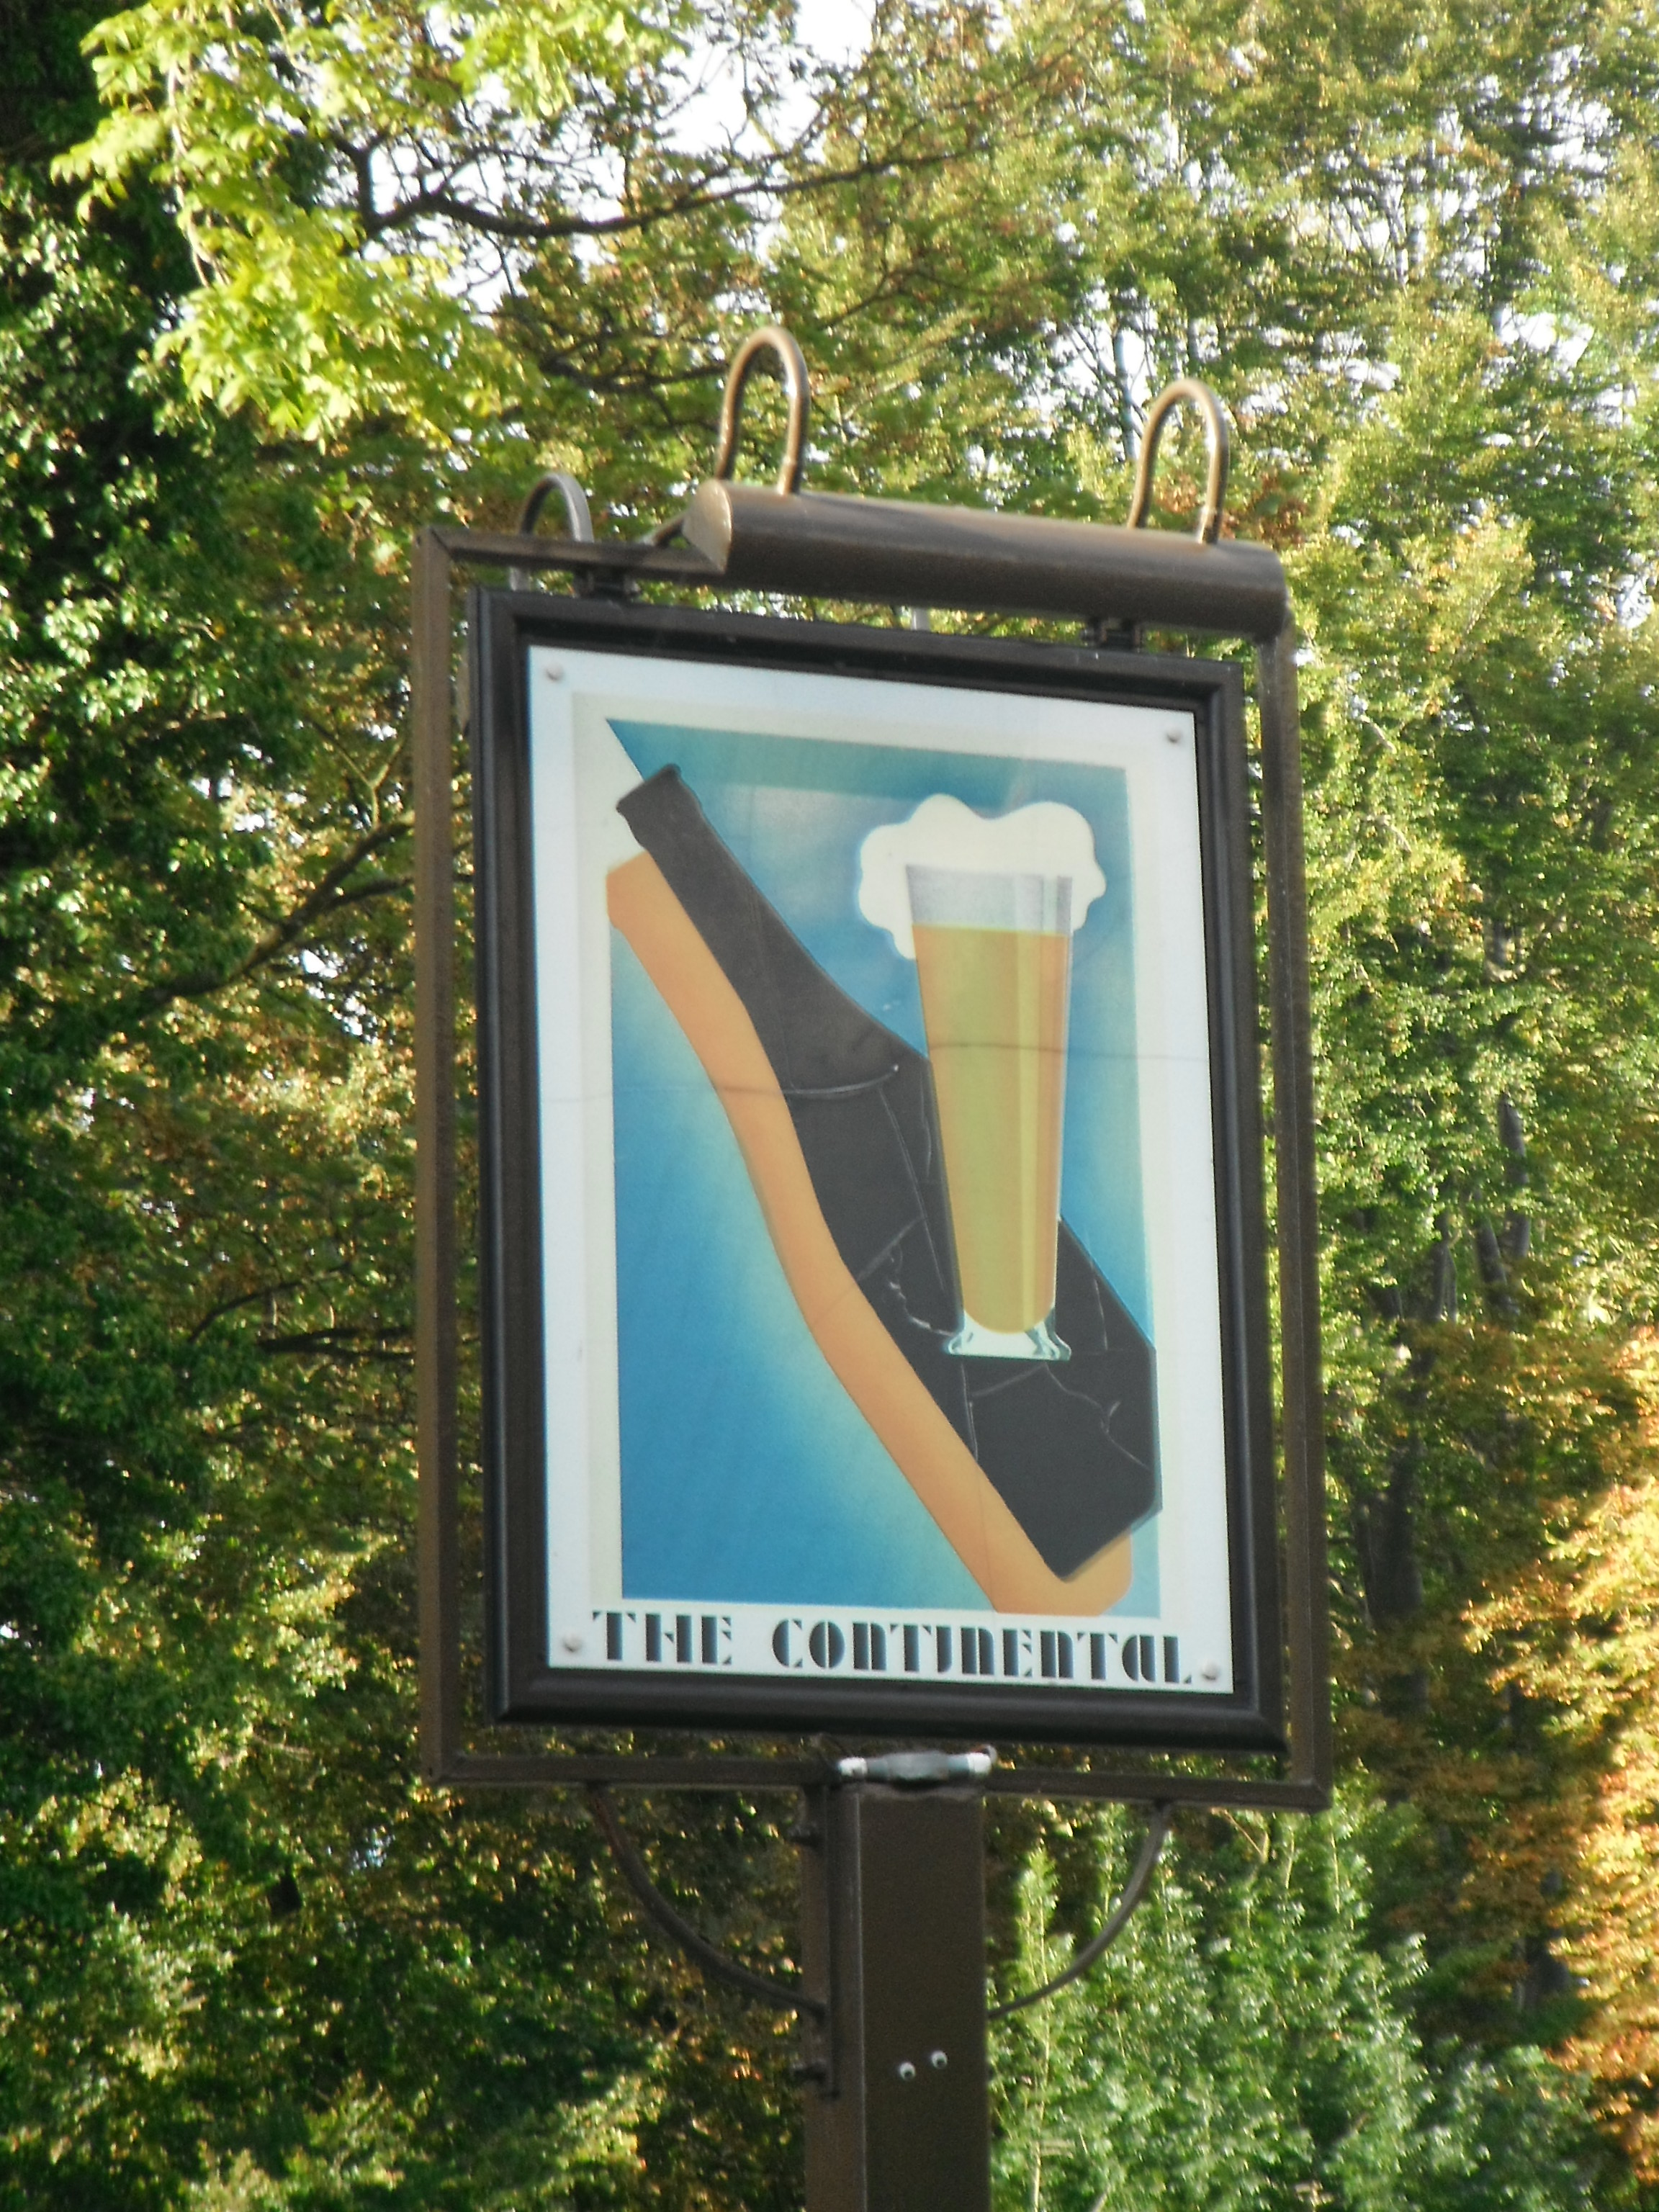 Photo taken by me – The Continental Pub sign – Preston